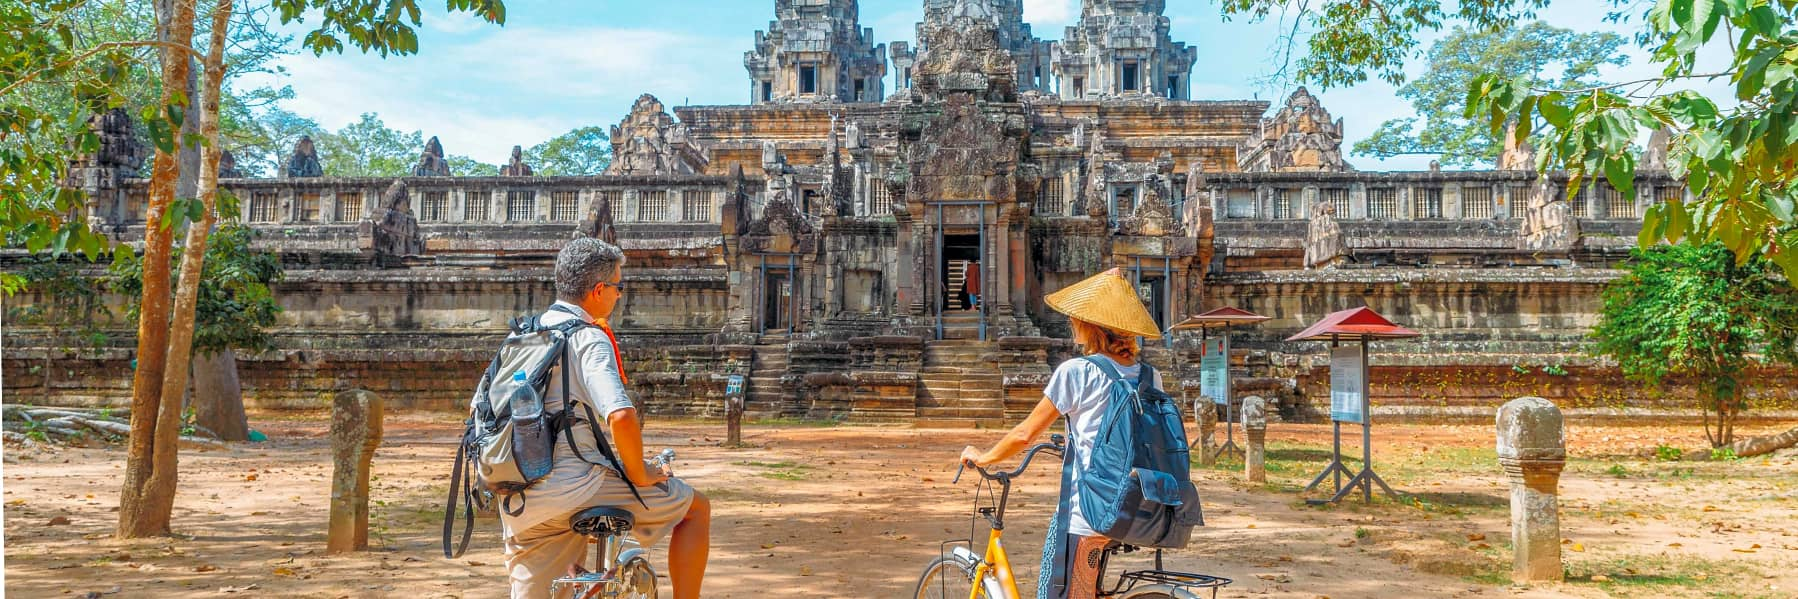 Angkor Wat Bike Tour (Morning) – Half Day gallery